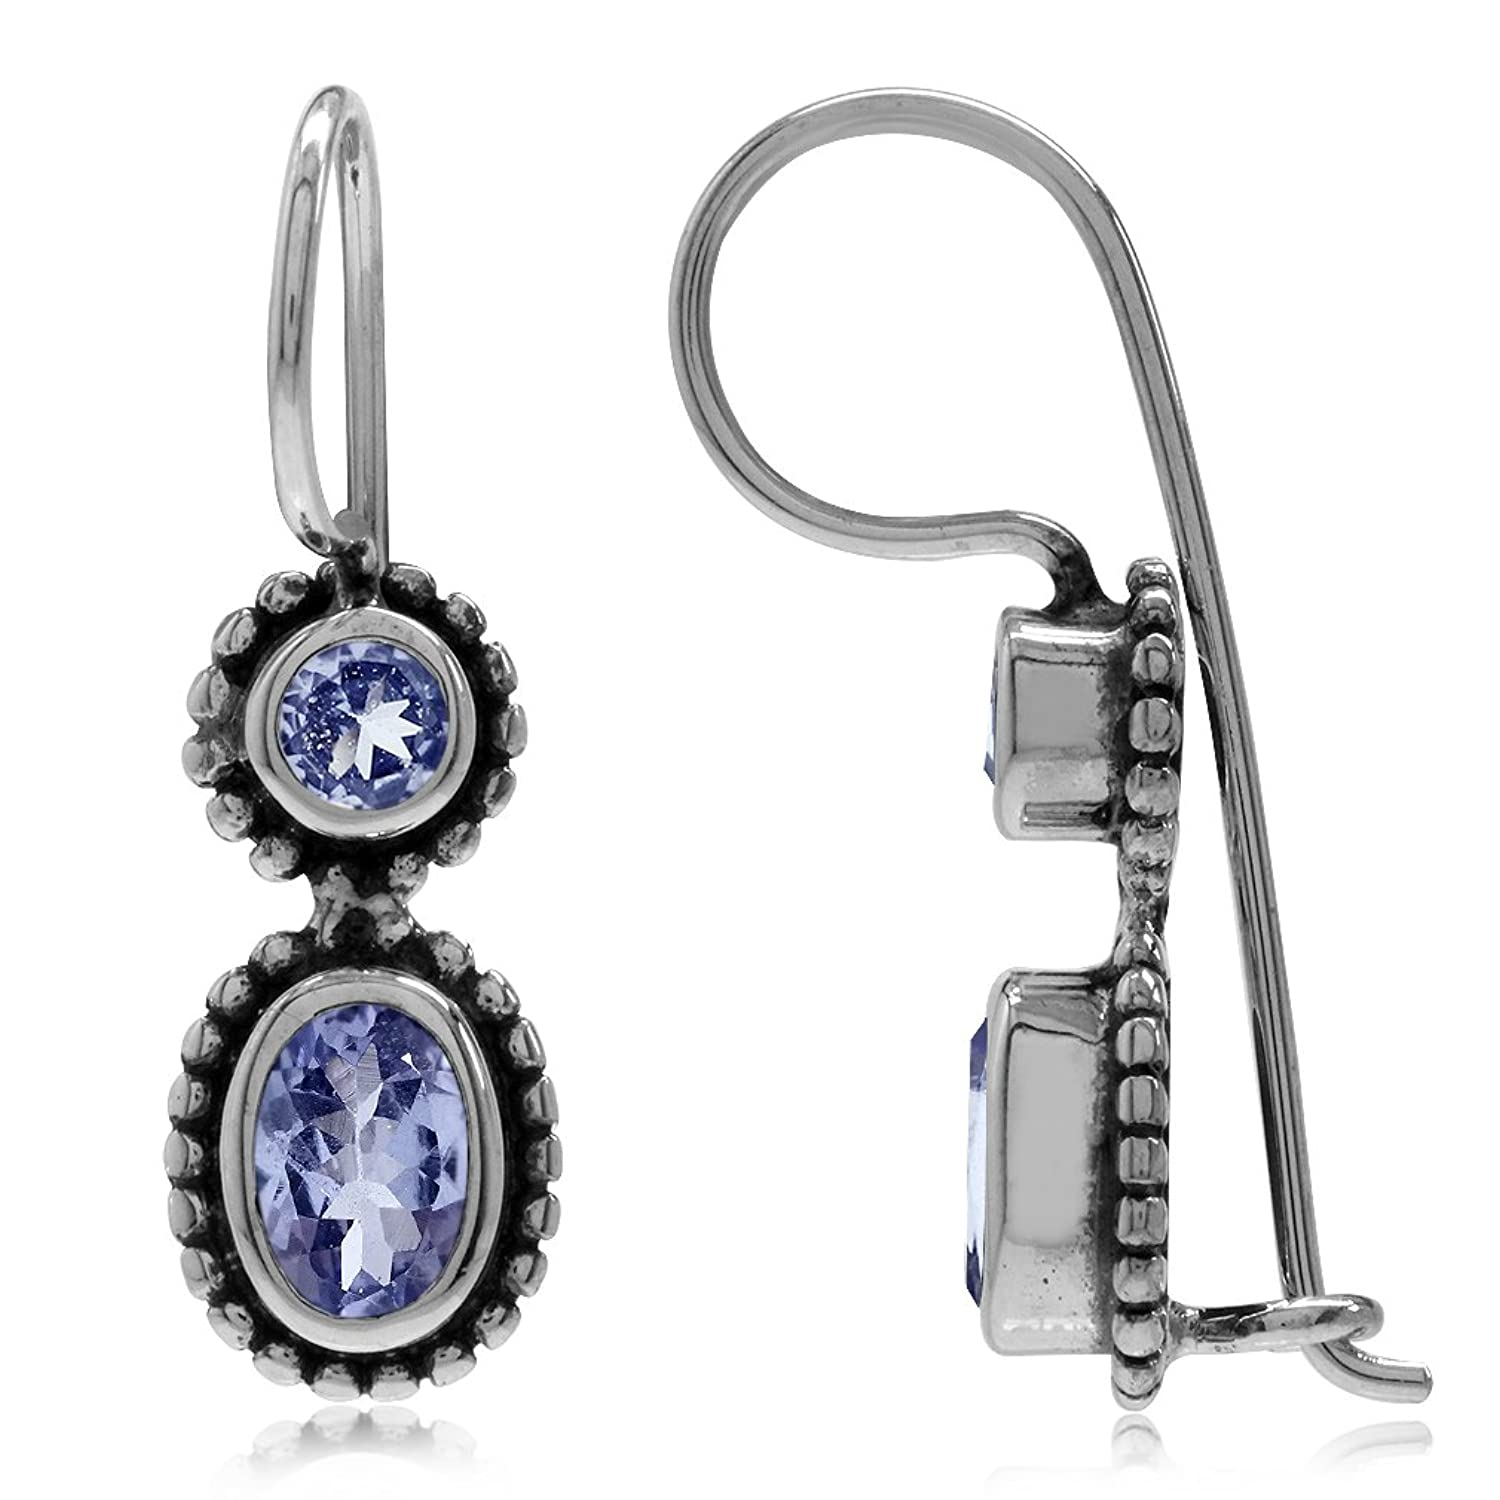 1.02ct. Genuine Tanzanite Antique Finish 925 Sterling Silver Balinese Hook Earrings